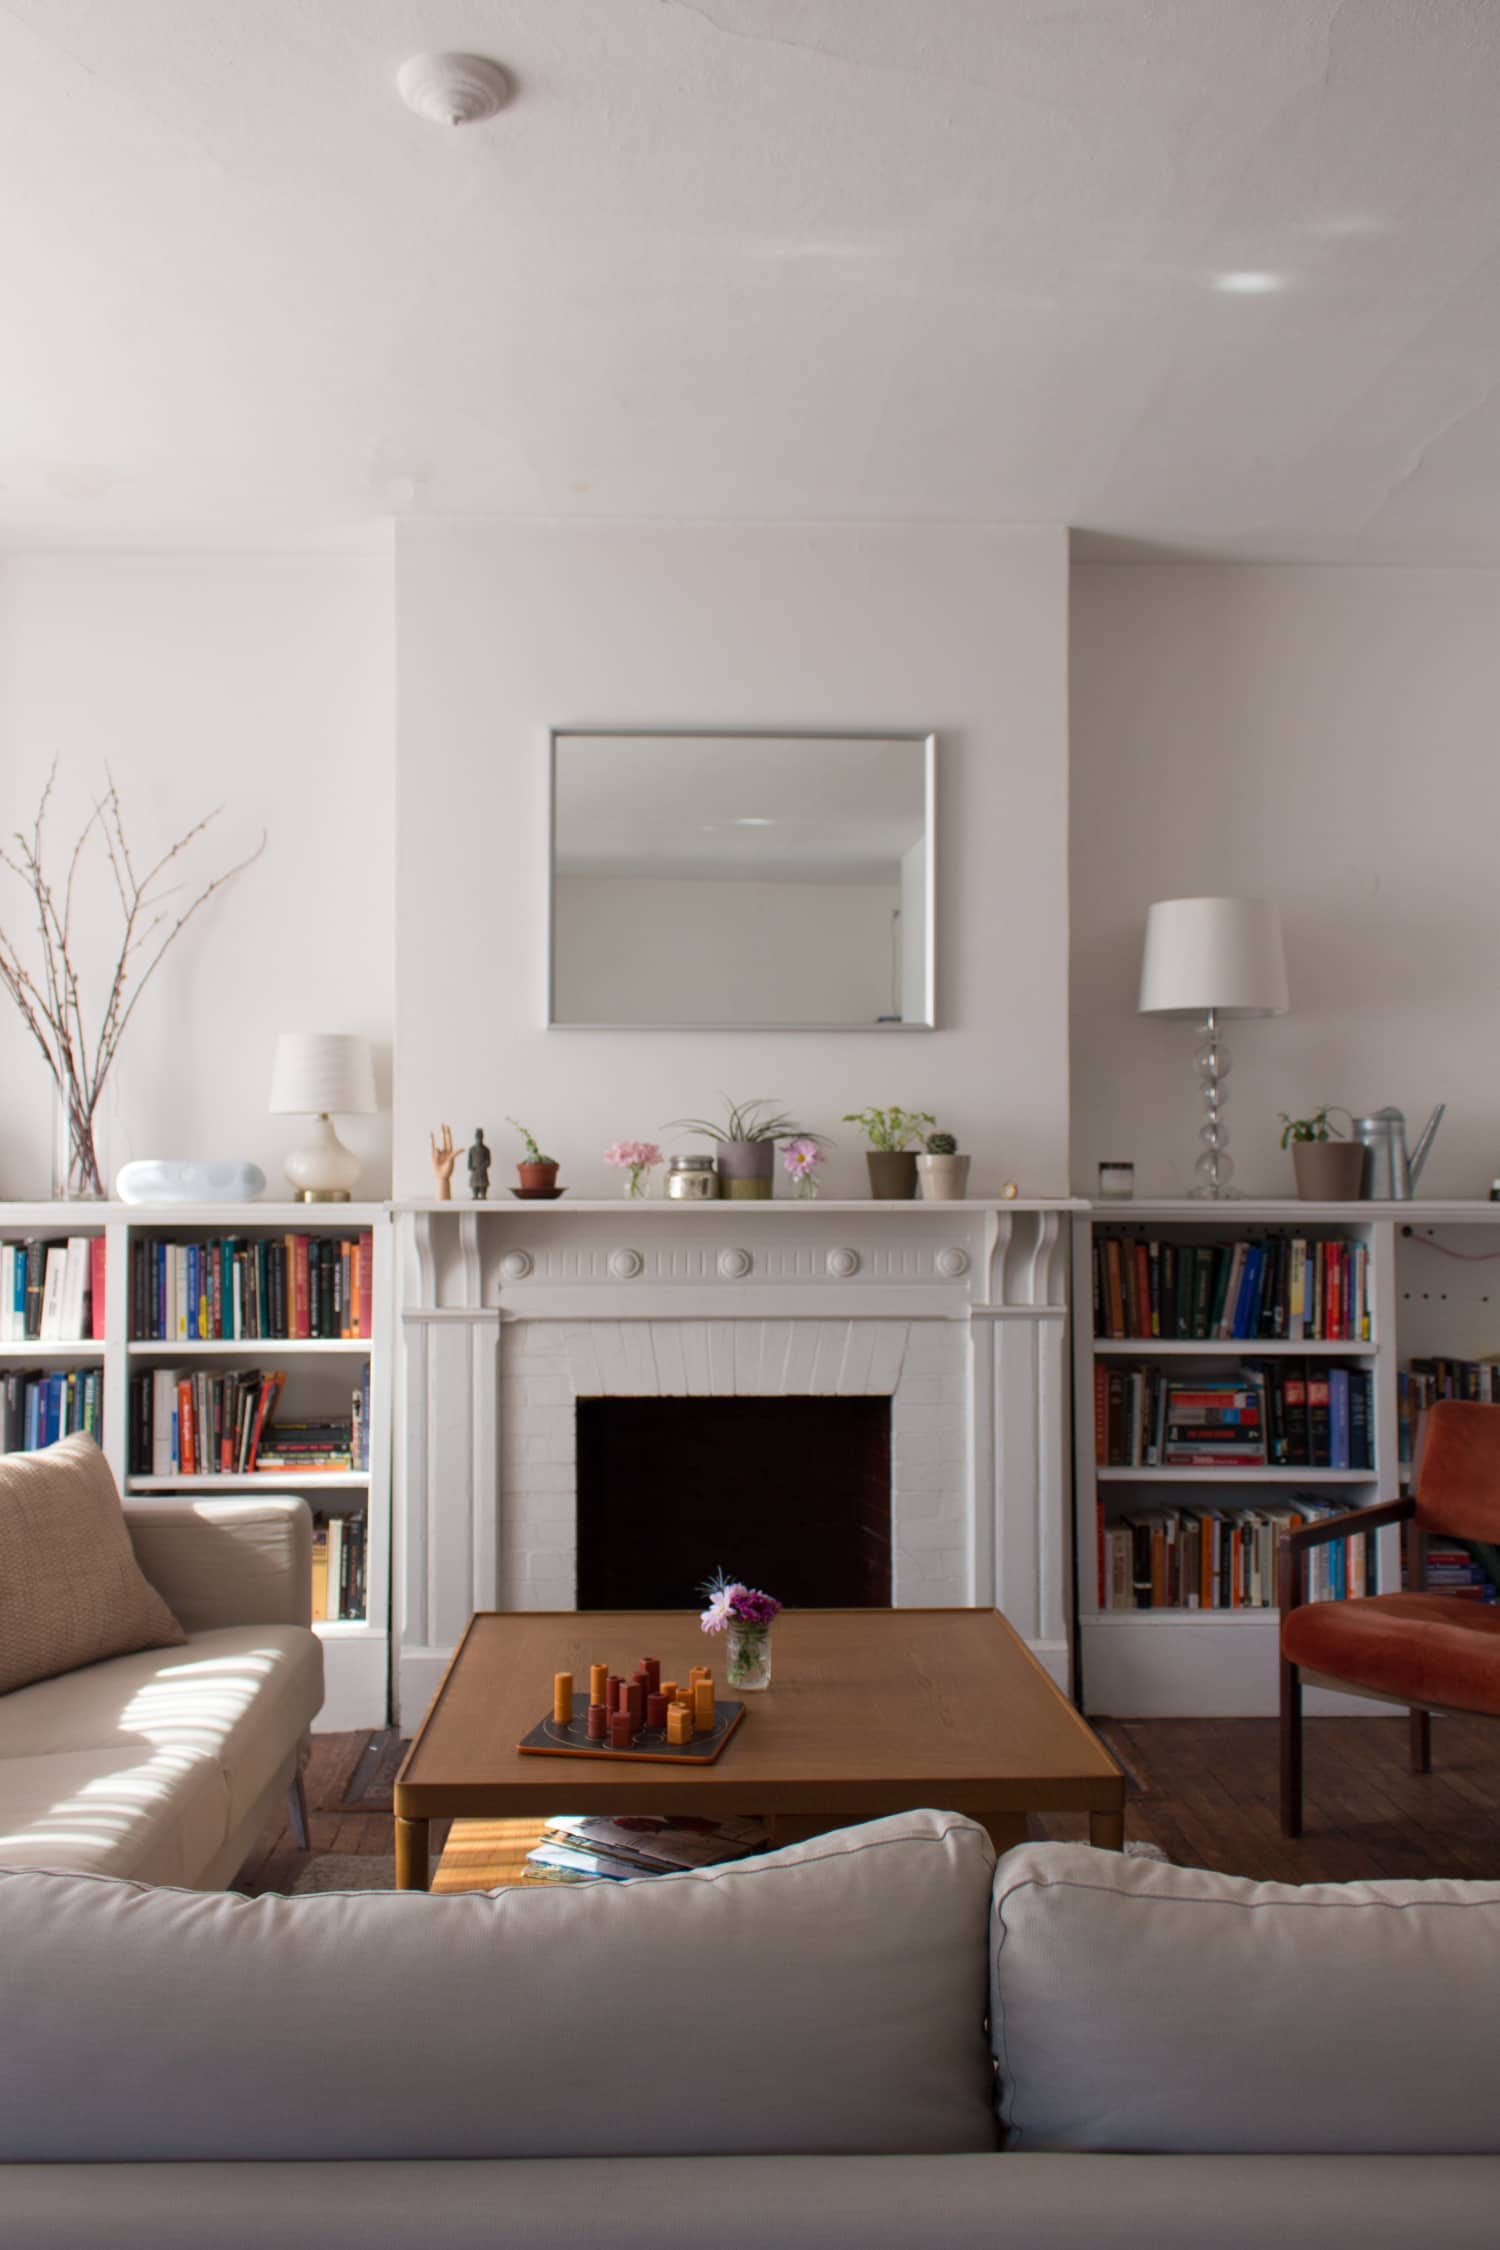 24 Simple Apartment Decoration You Can Steal: House Tour: Small, Simple Apartment With Muted Colors